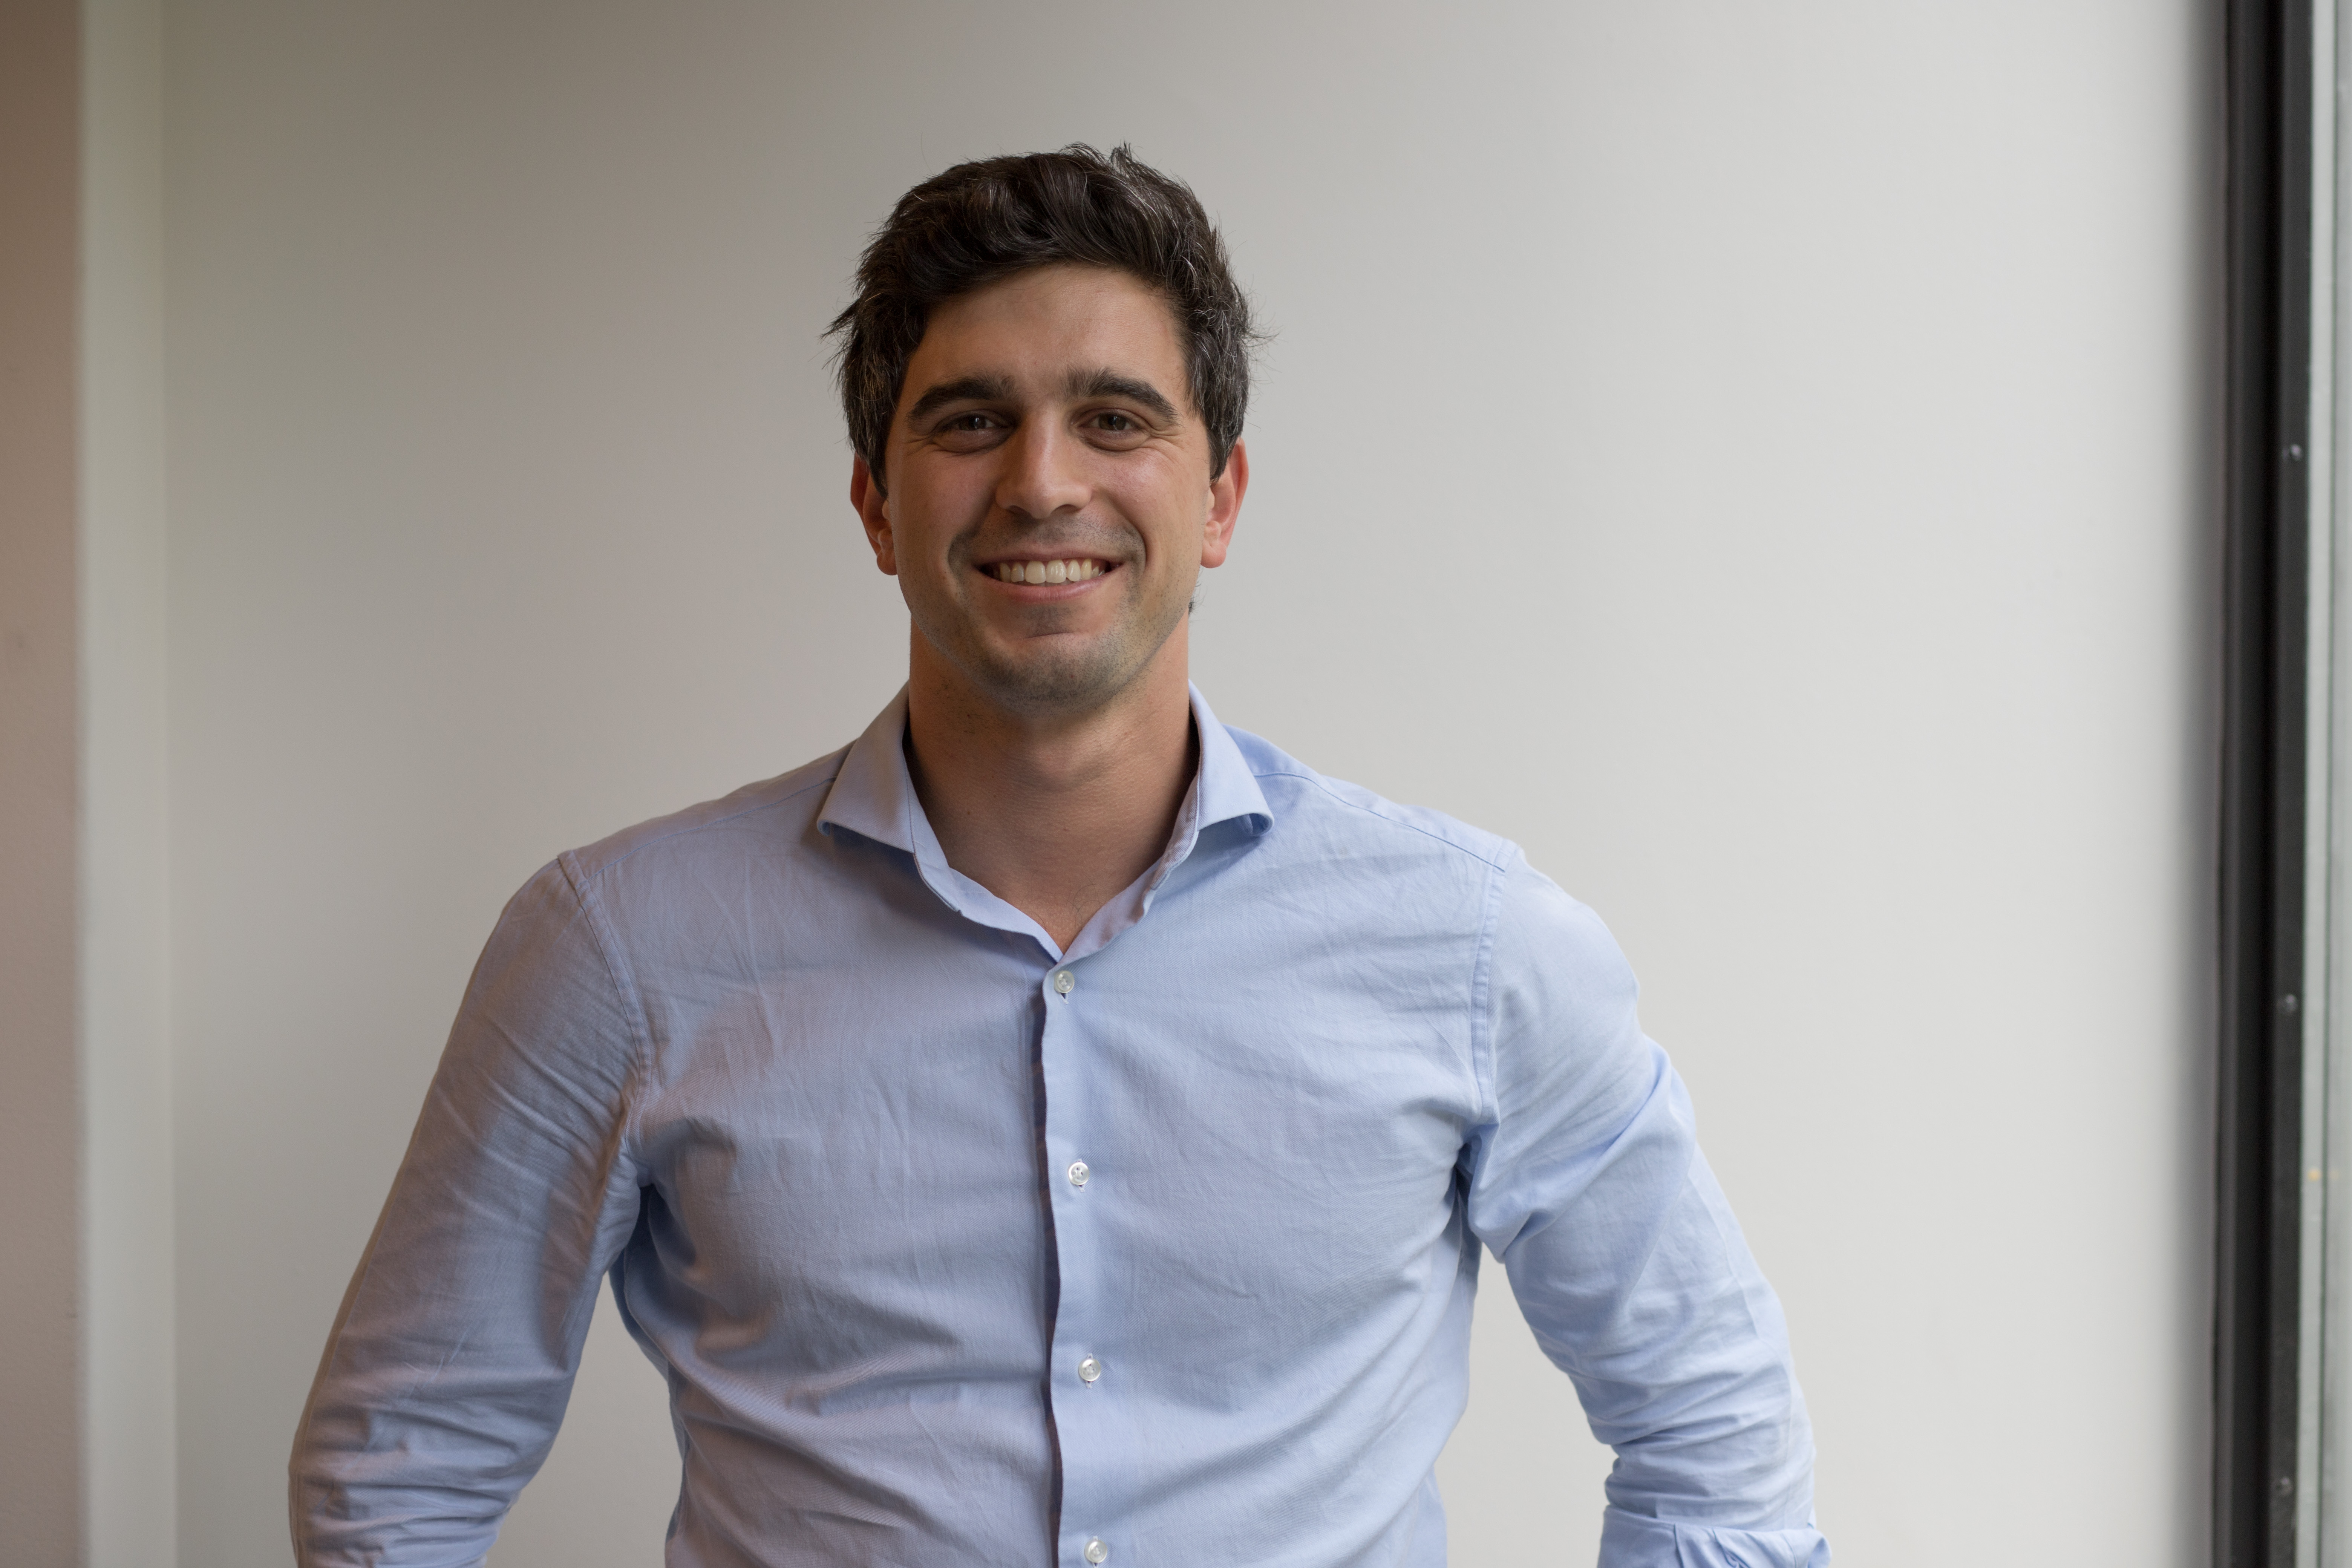 Podcast Episode 203: Nick Molnar, CEO Afterpay | The Right Work Environment Creates Entrepreneurial Spirit